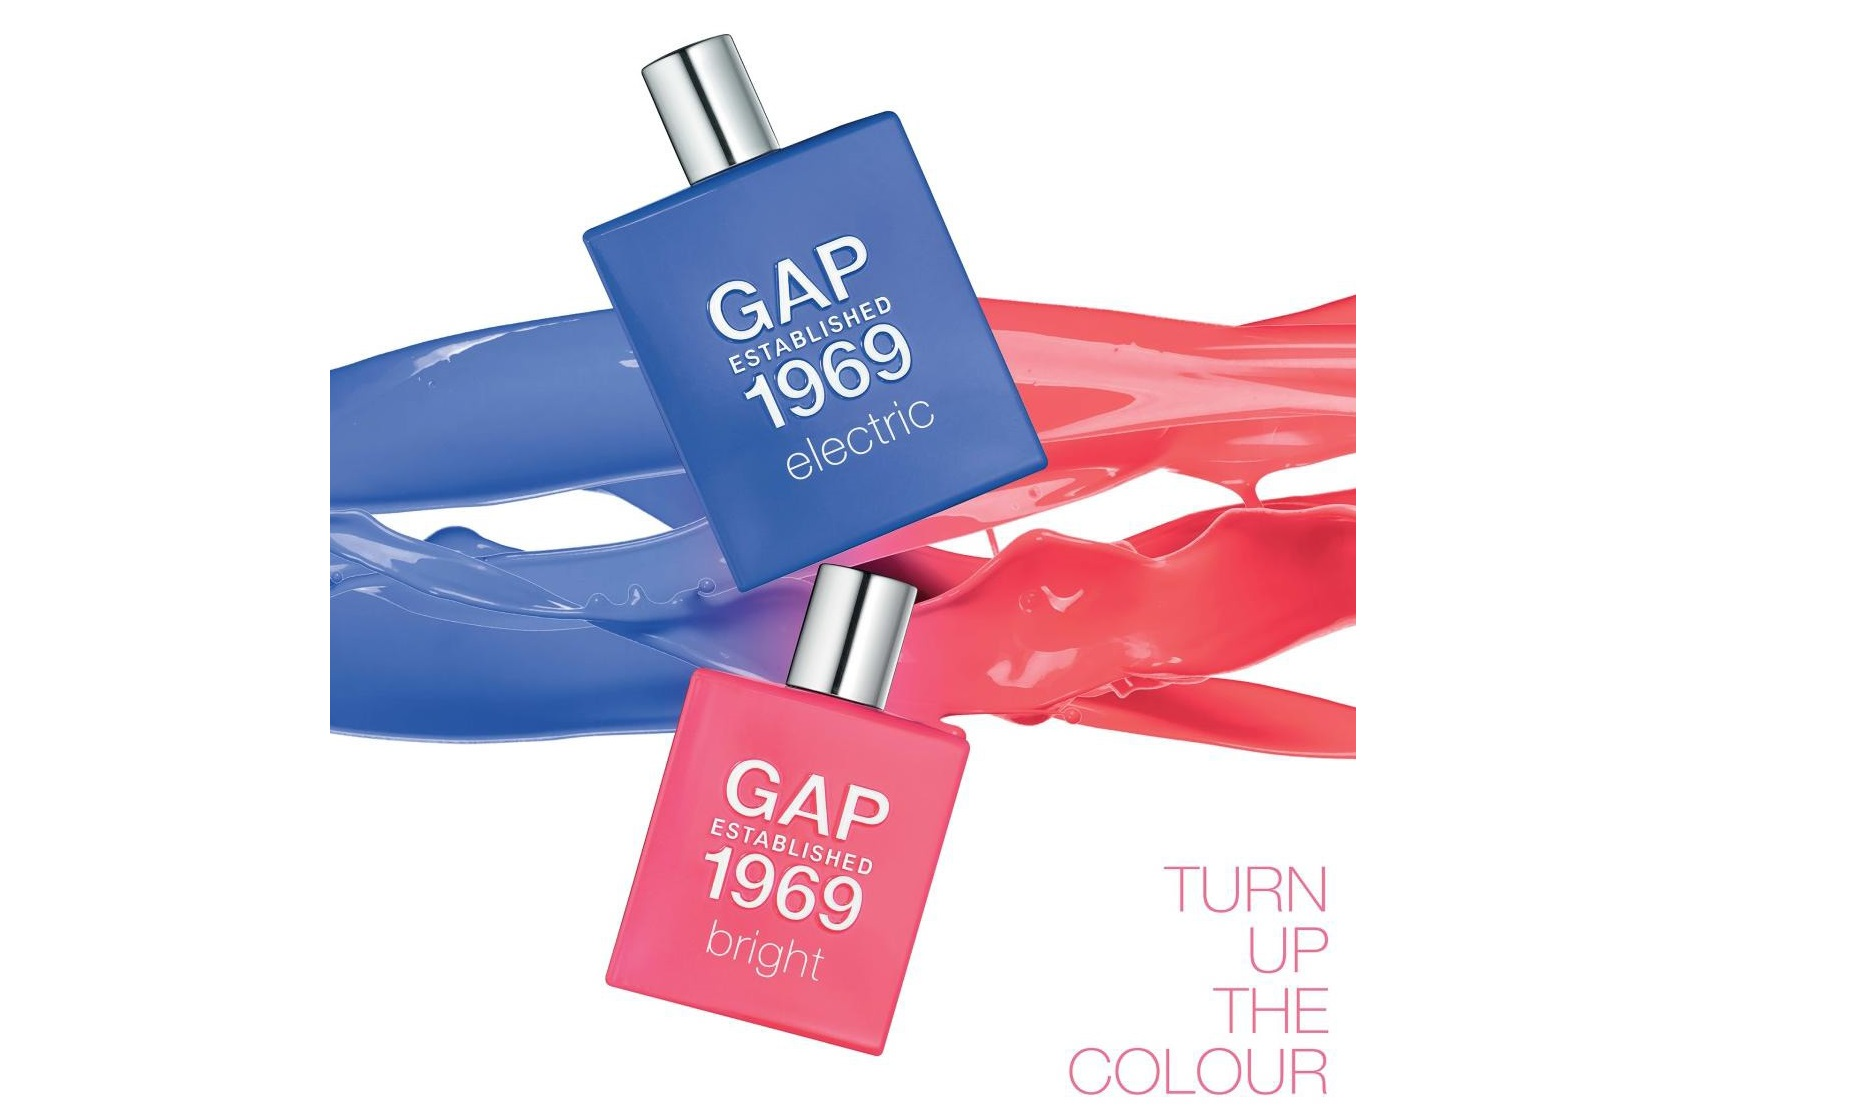 GAP Established 1969 Bright for Woman 2